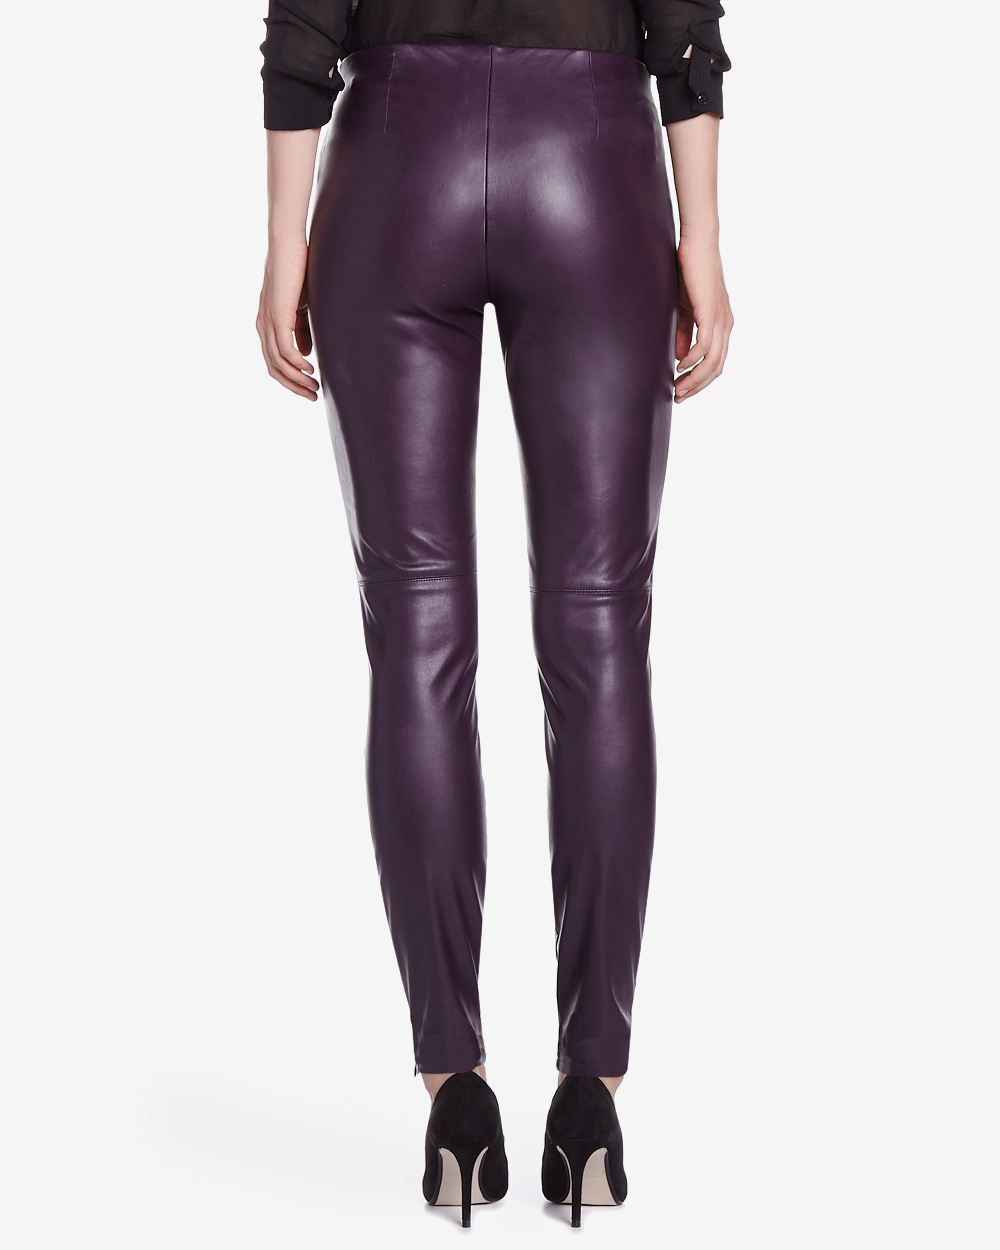 A quilted, faux-leather pair from Jessica Simpson offers a chic, elevated vibe. Rev it up! Get in on a must-have look for plus sizes, petites and teens when you shop for faux-leather leggings at Macy's.